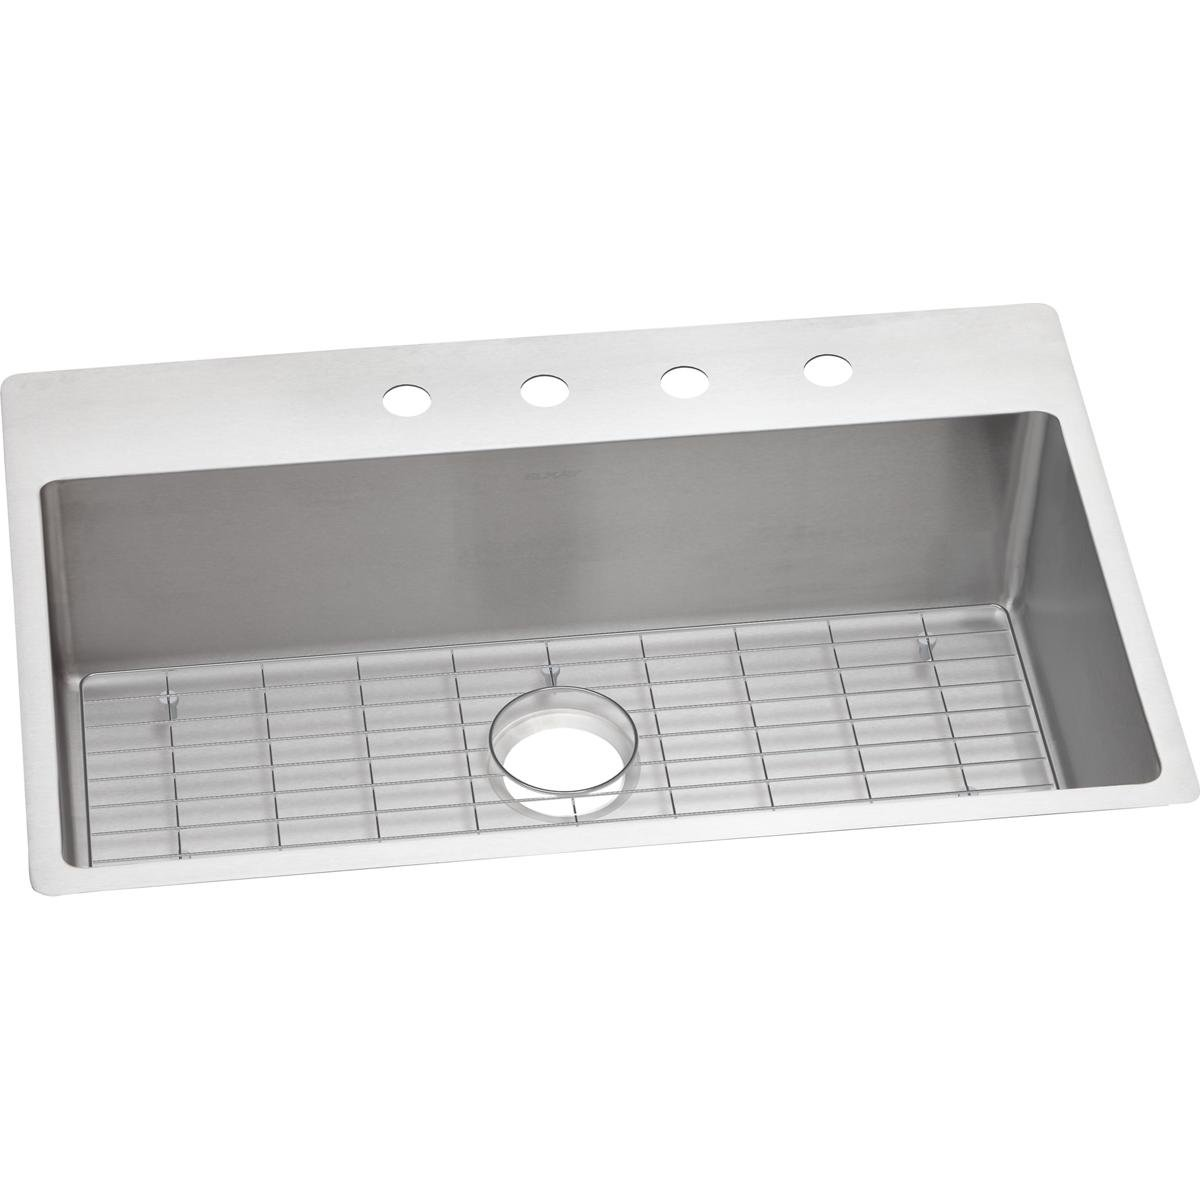 Elkay Crosstown Ectsrs33229tbg1 Single Bowl Dual Mount Stainless Counter Model Requires Plumbing And Electrical Work Under Your Sink Steel Kitchen Kit